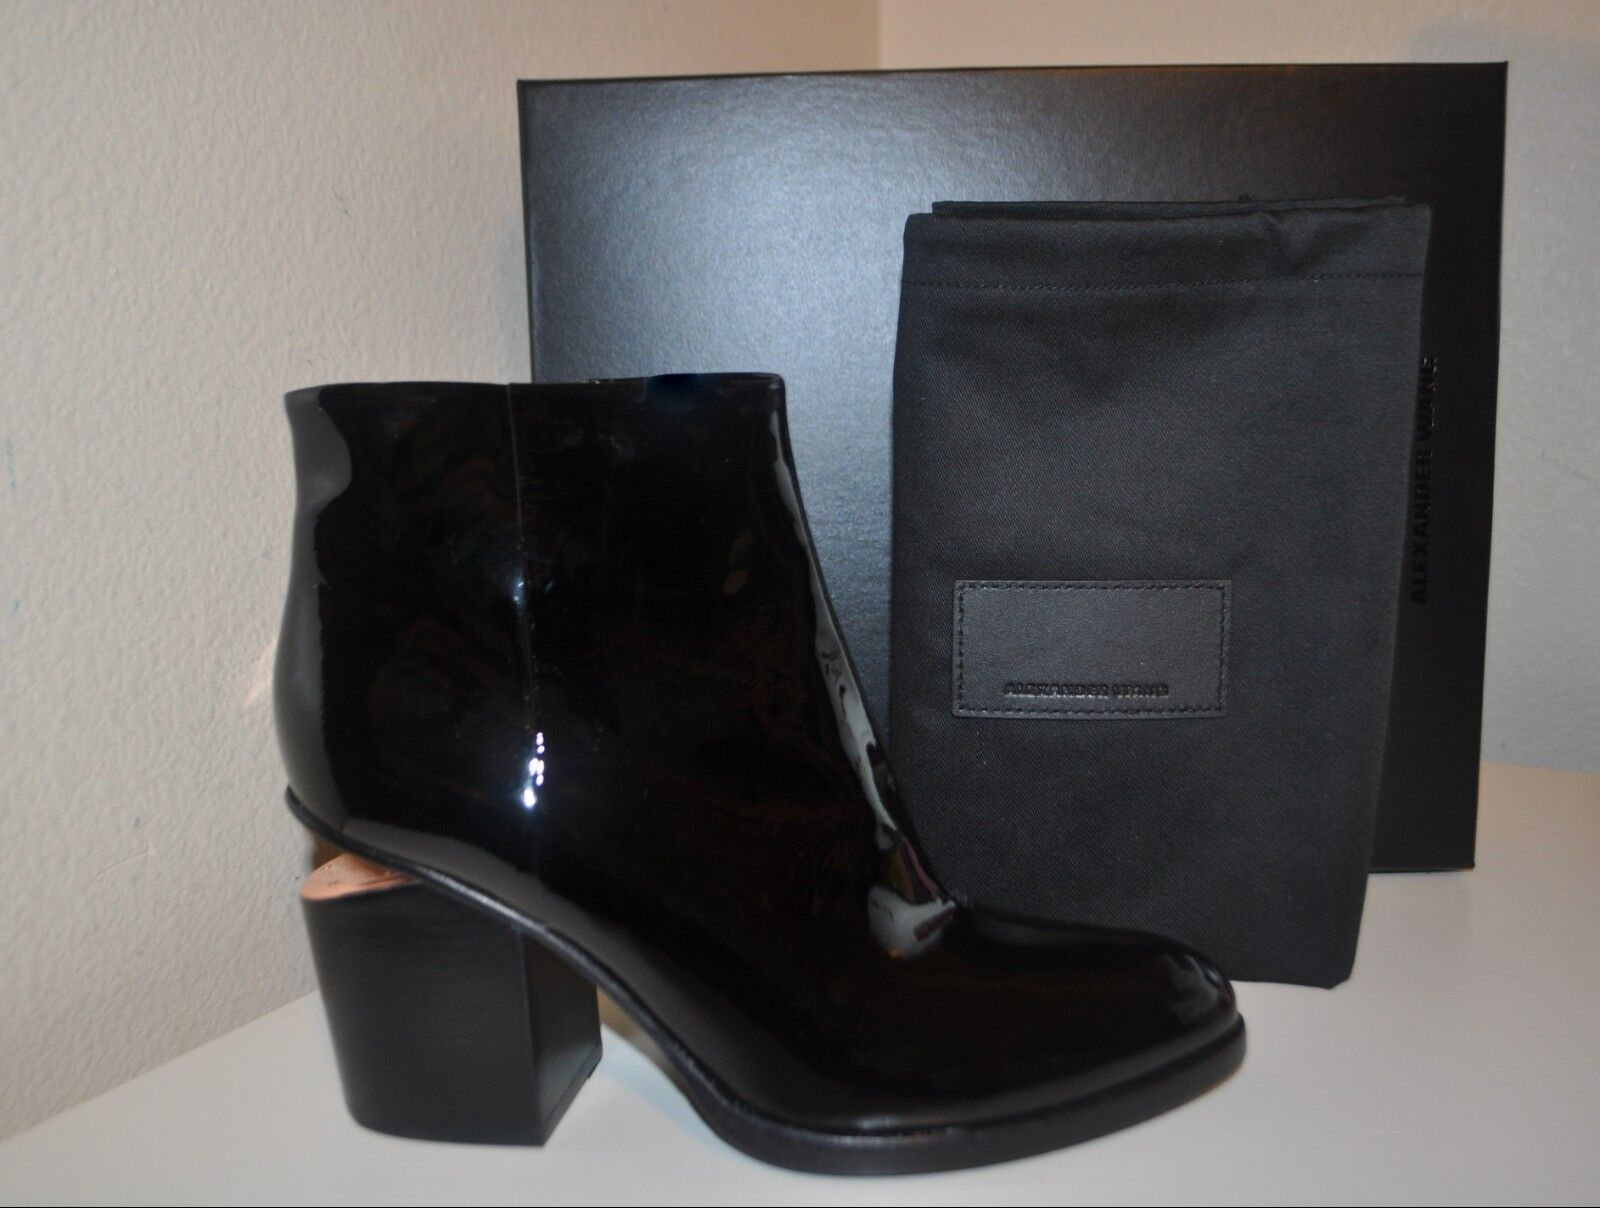 NIB Alexander Wang GABI Ankle Block Heel Bootie Black Patent Leather Sz 38- 7 US